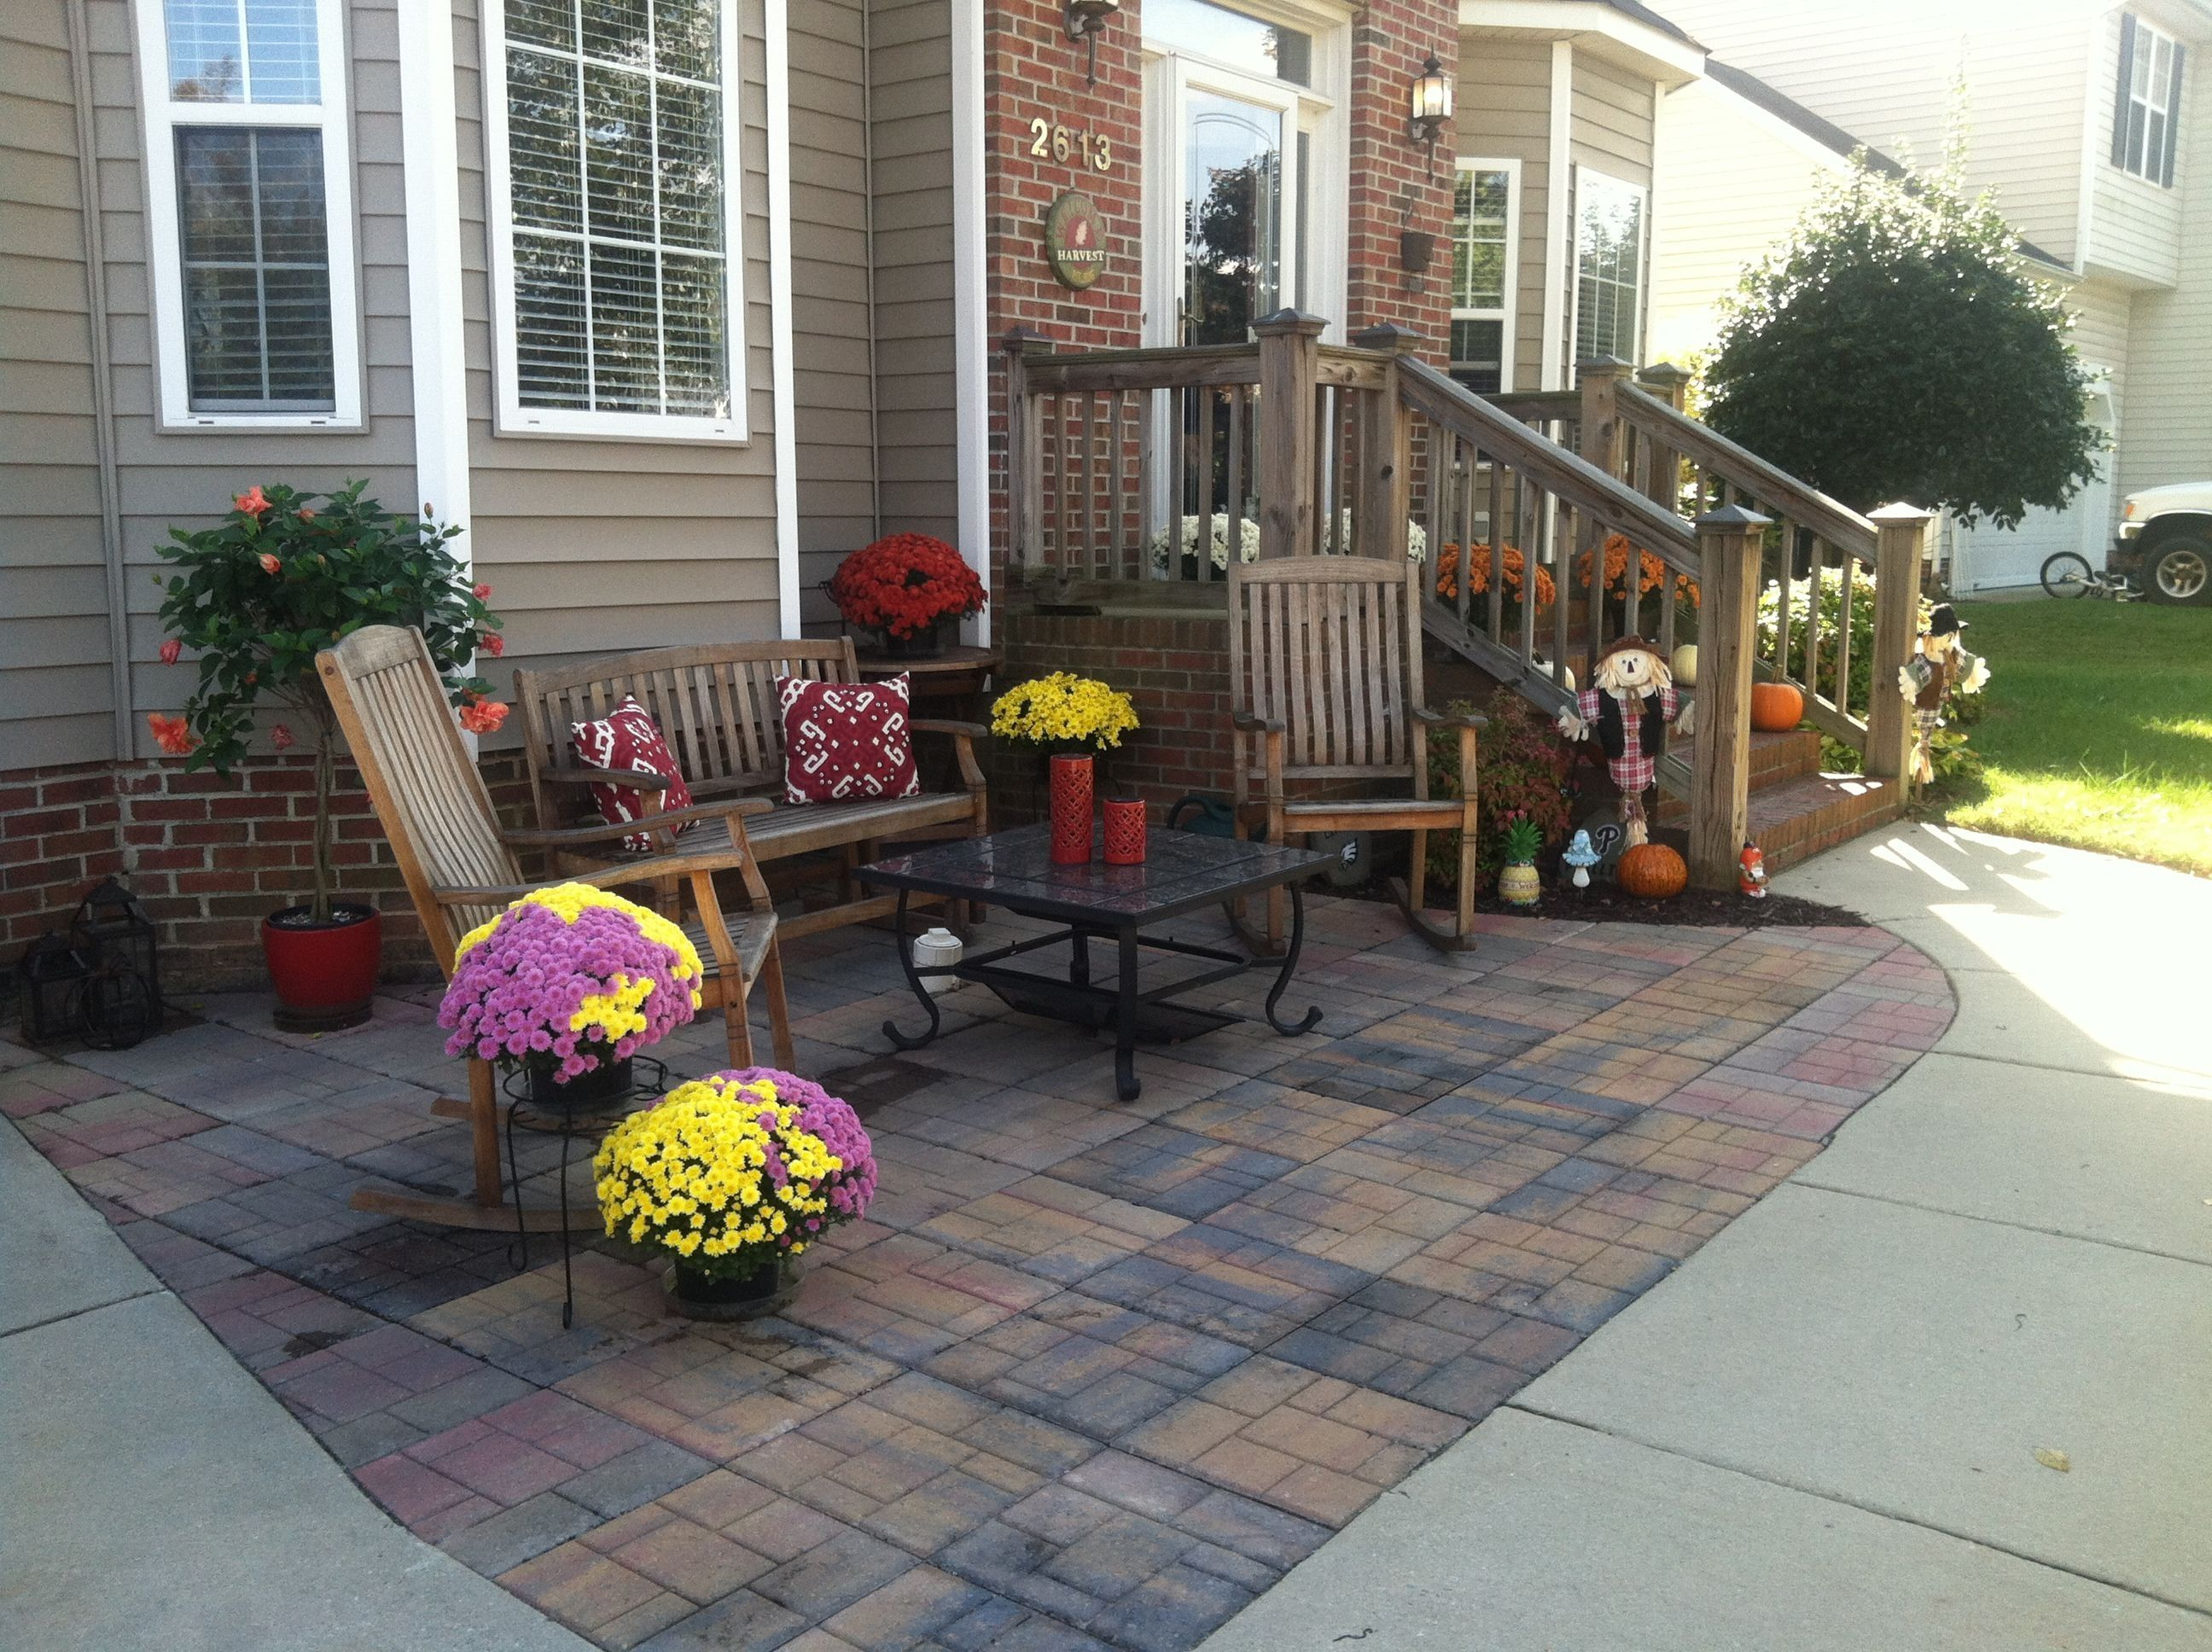 35 Simple Steps To Decorate Your Garden In Frontyard Front